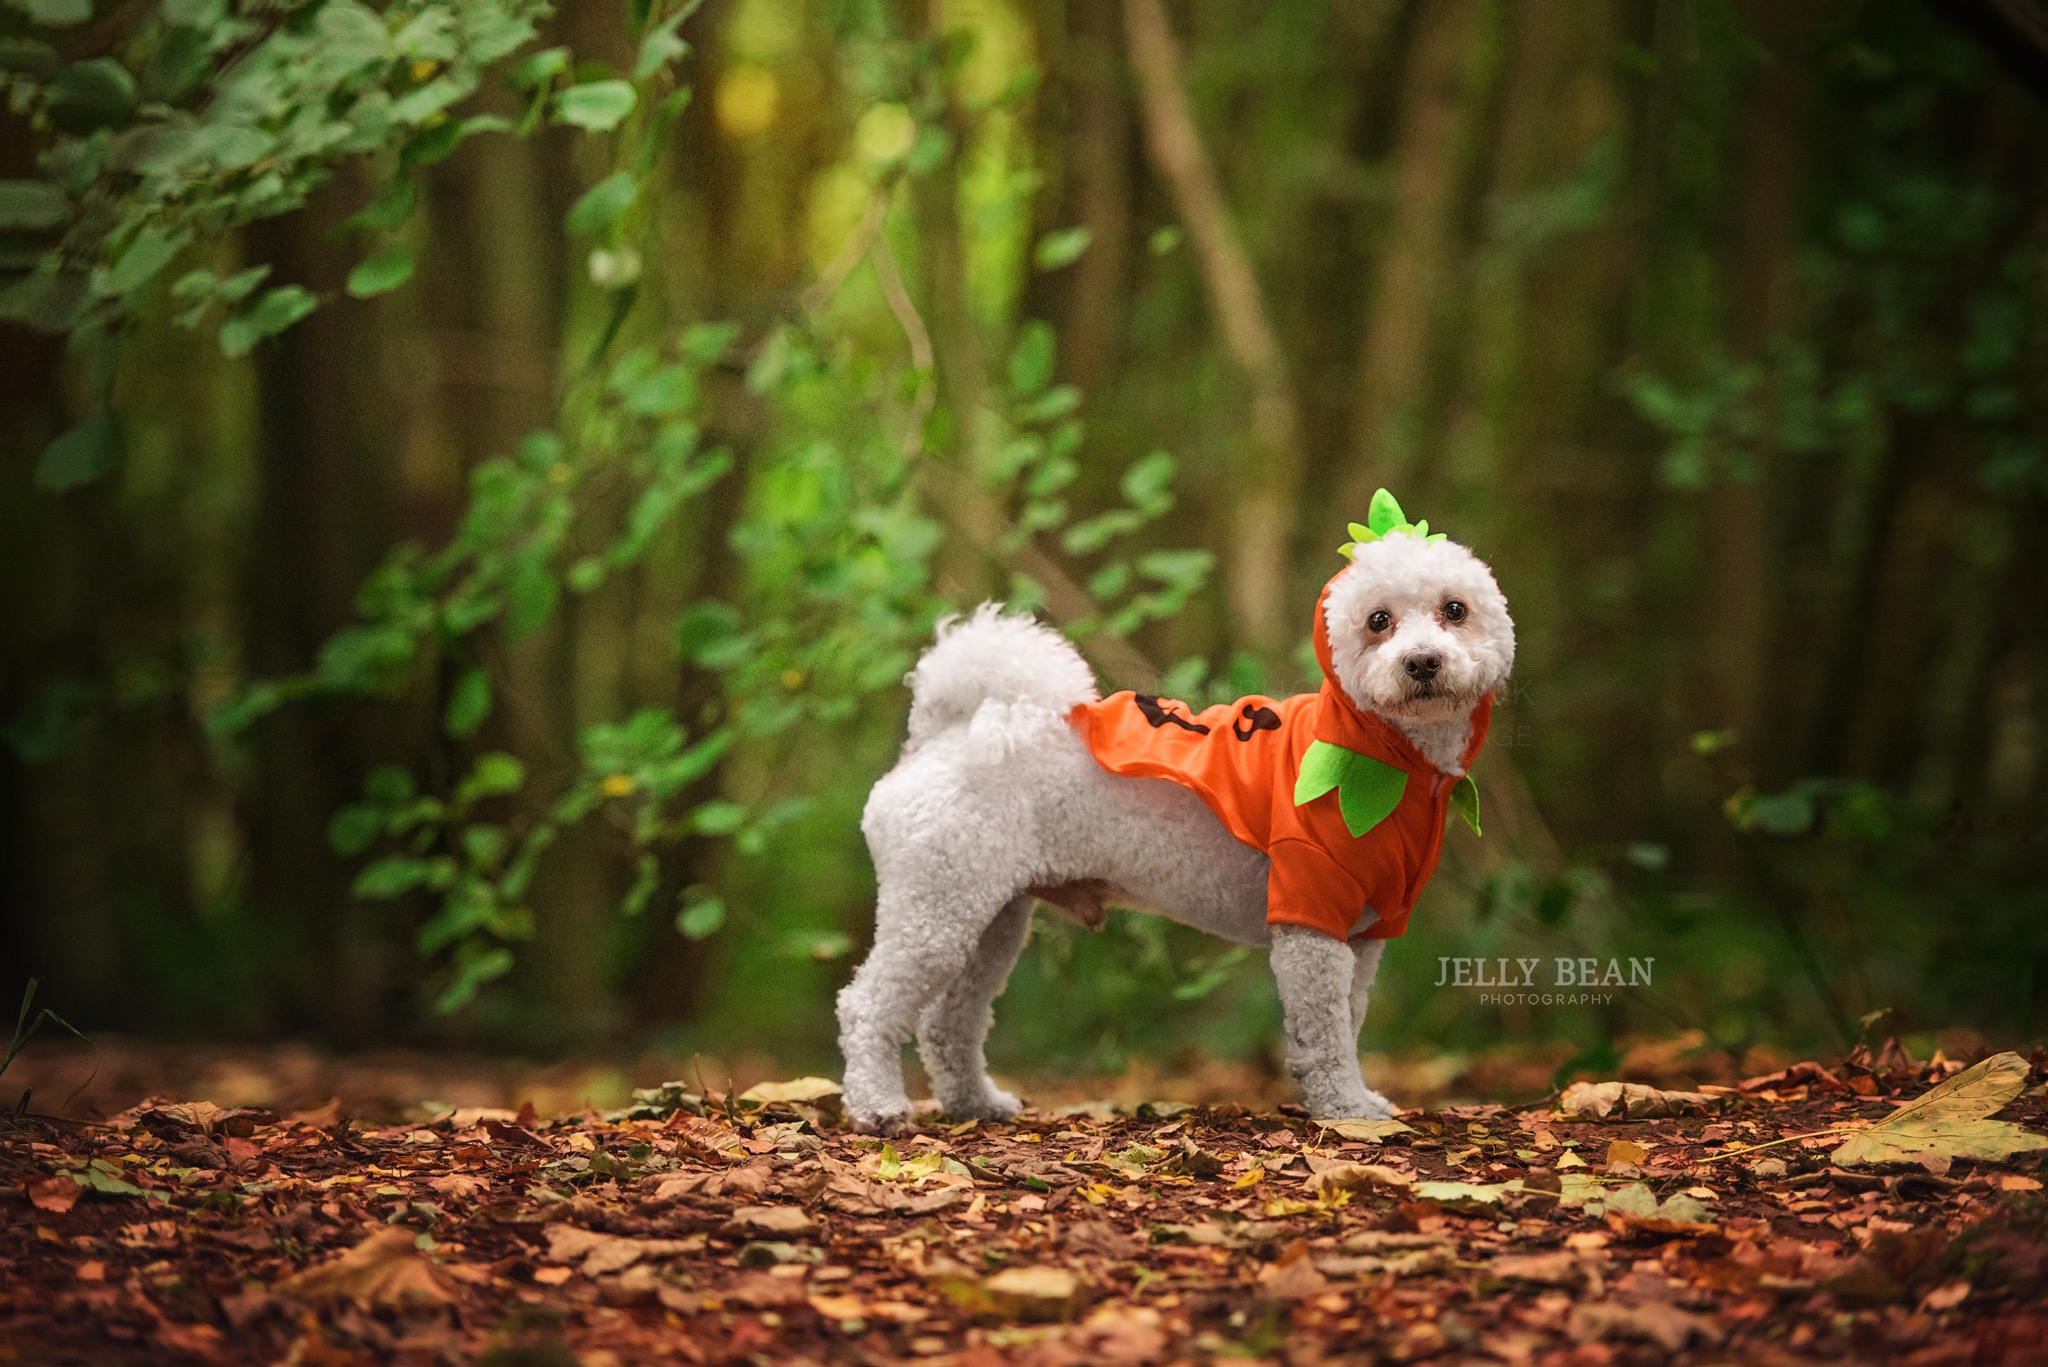 White dog wearing halloween outfit